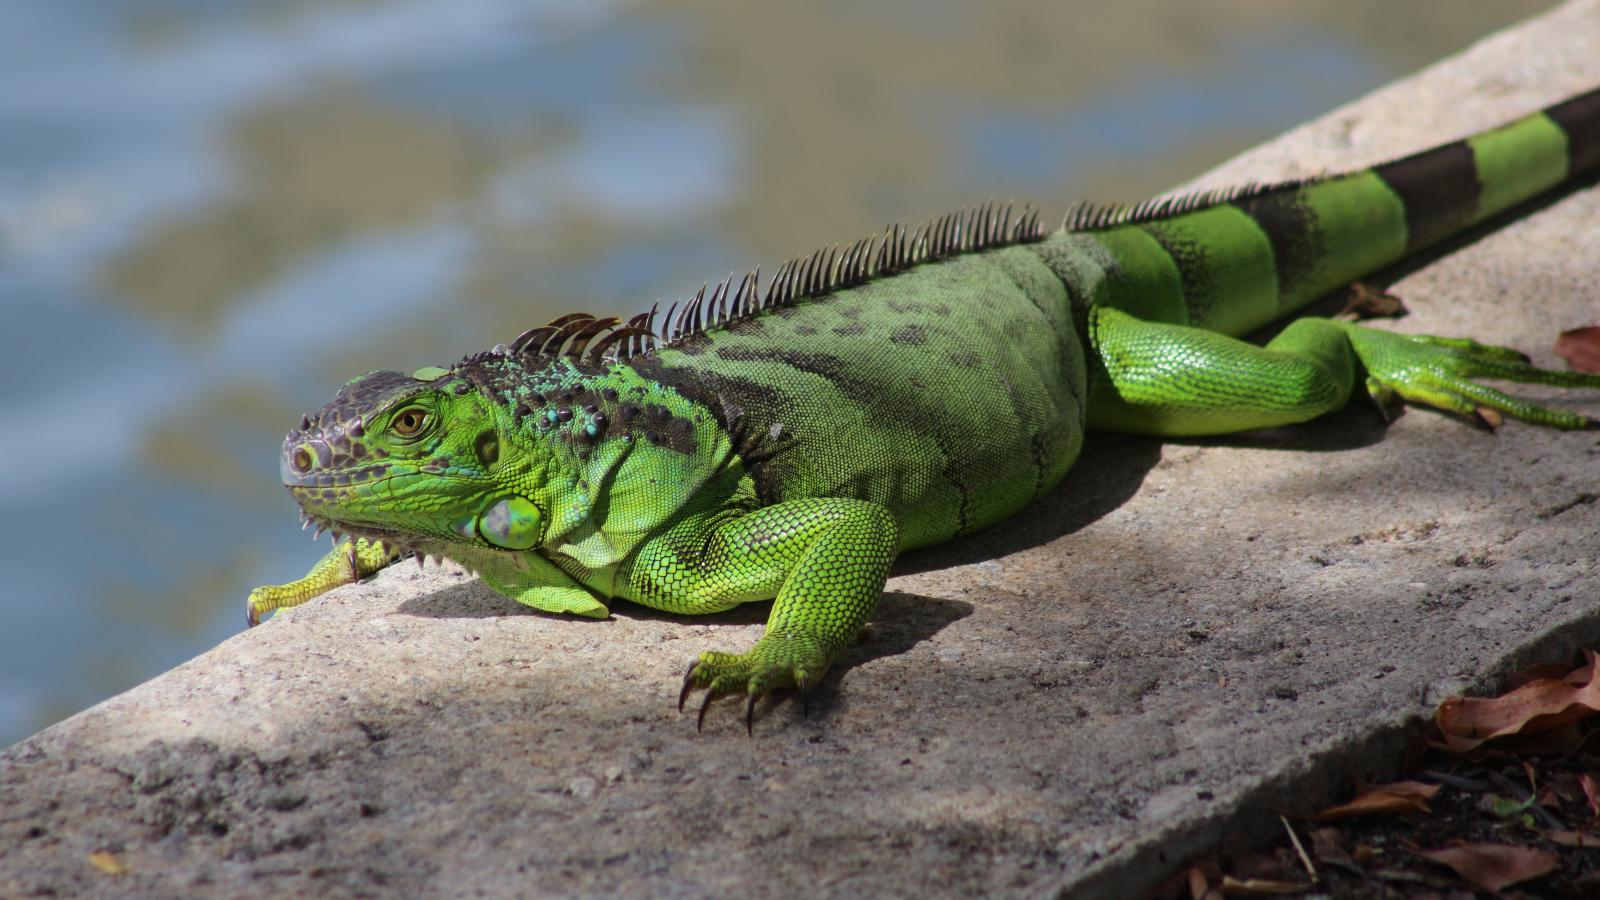 Florida tempers advice on hunting invasive iguanas — Quartz